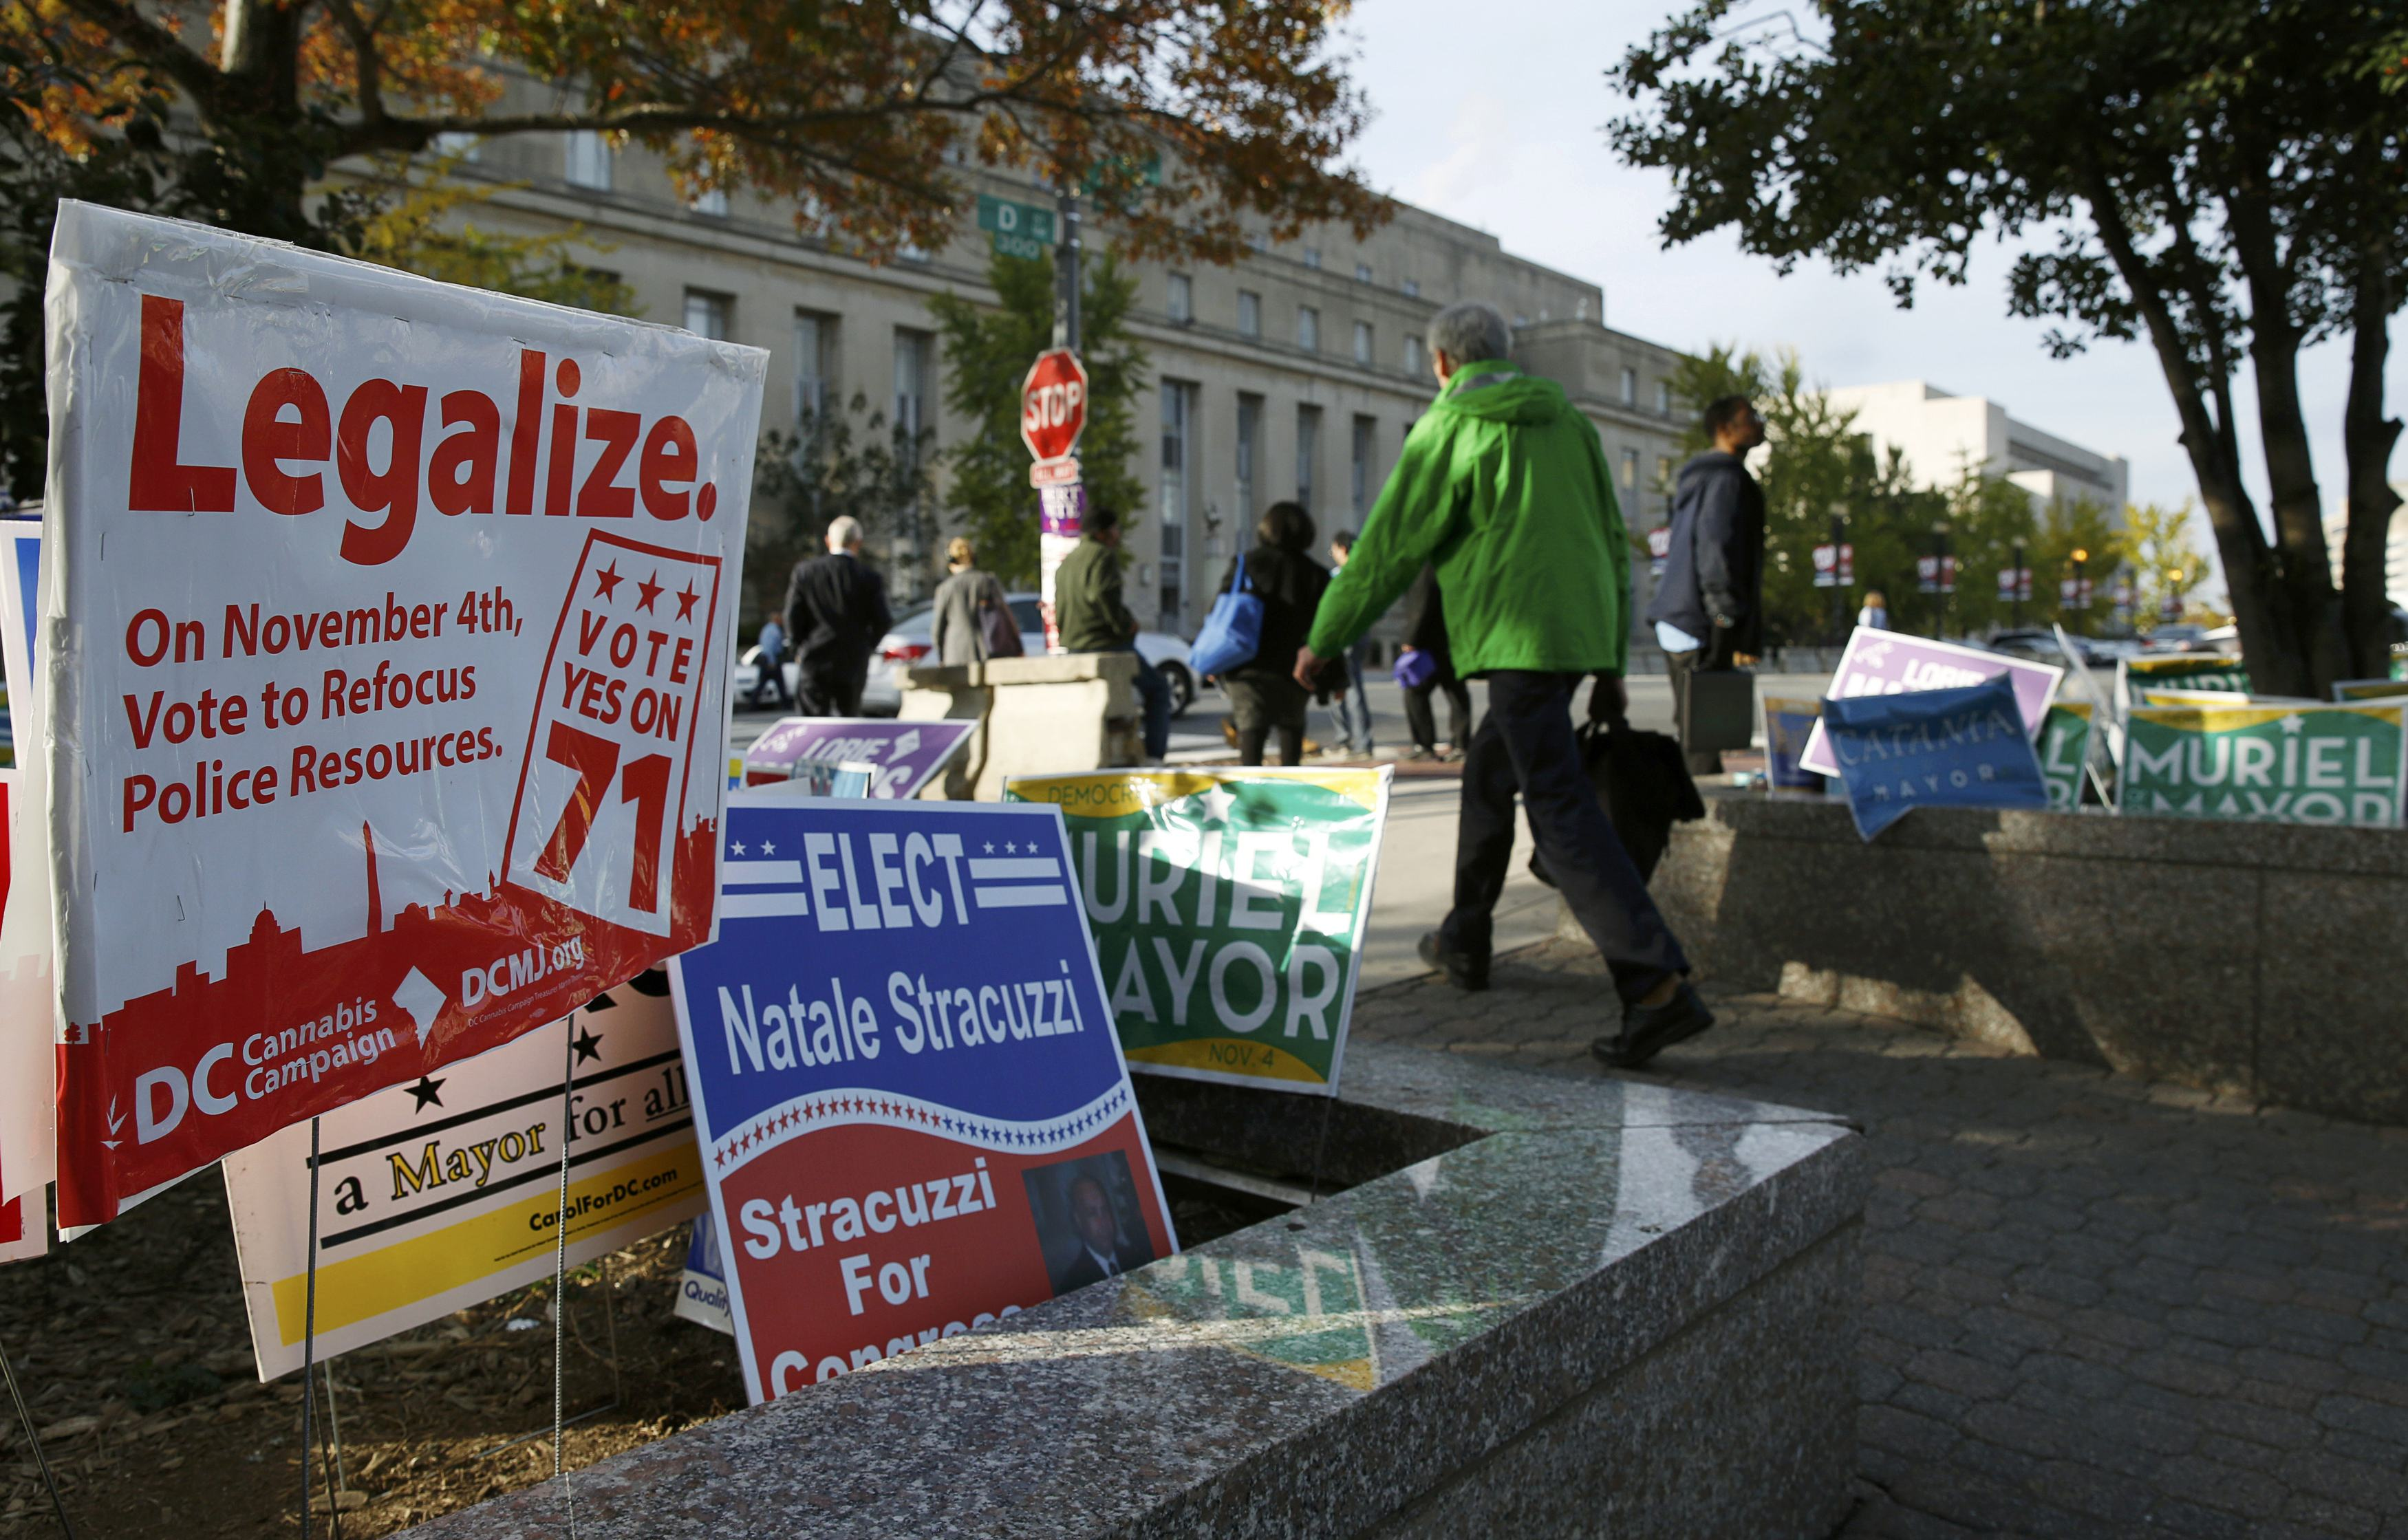 Pedestrians pass by a DC Cannabis Campaign sign in Washington